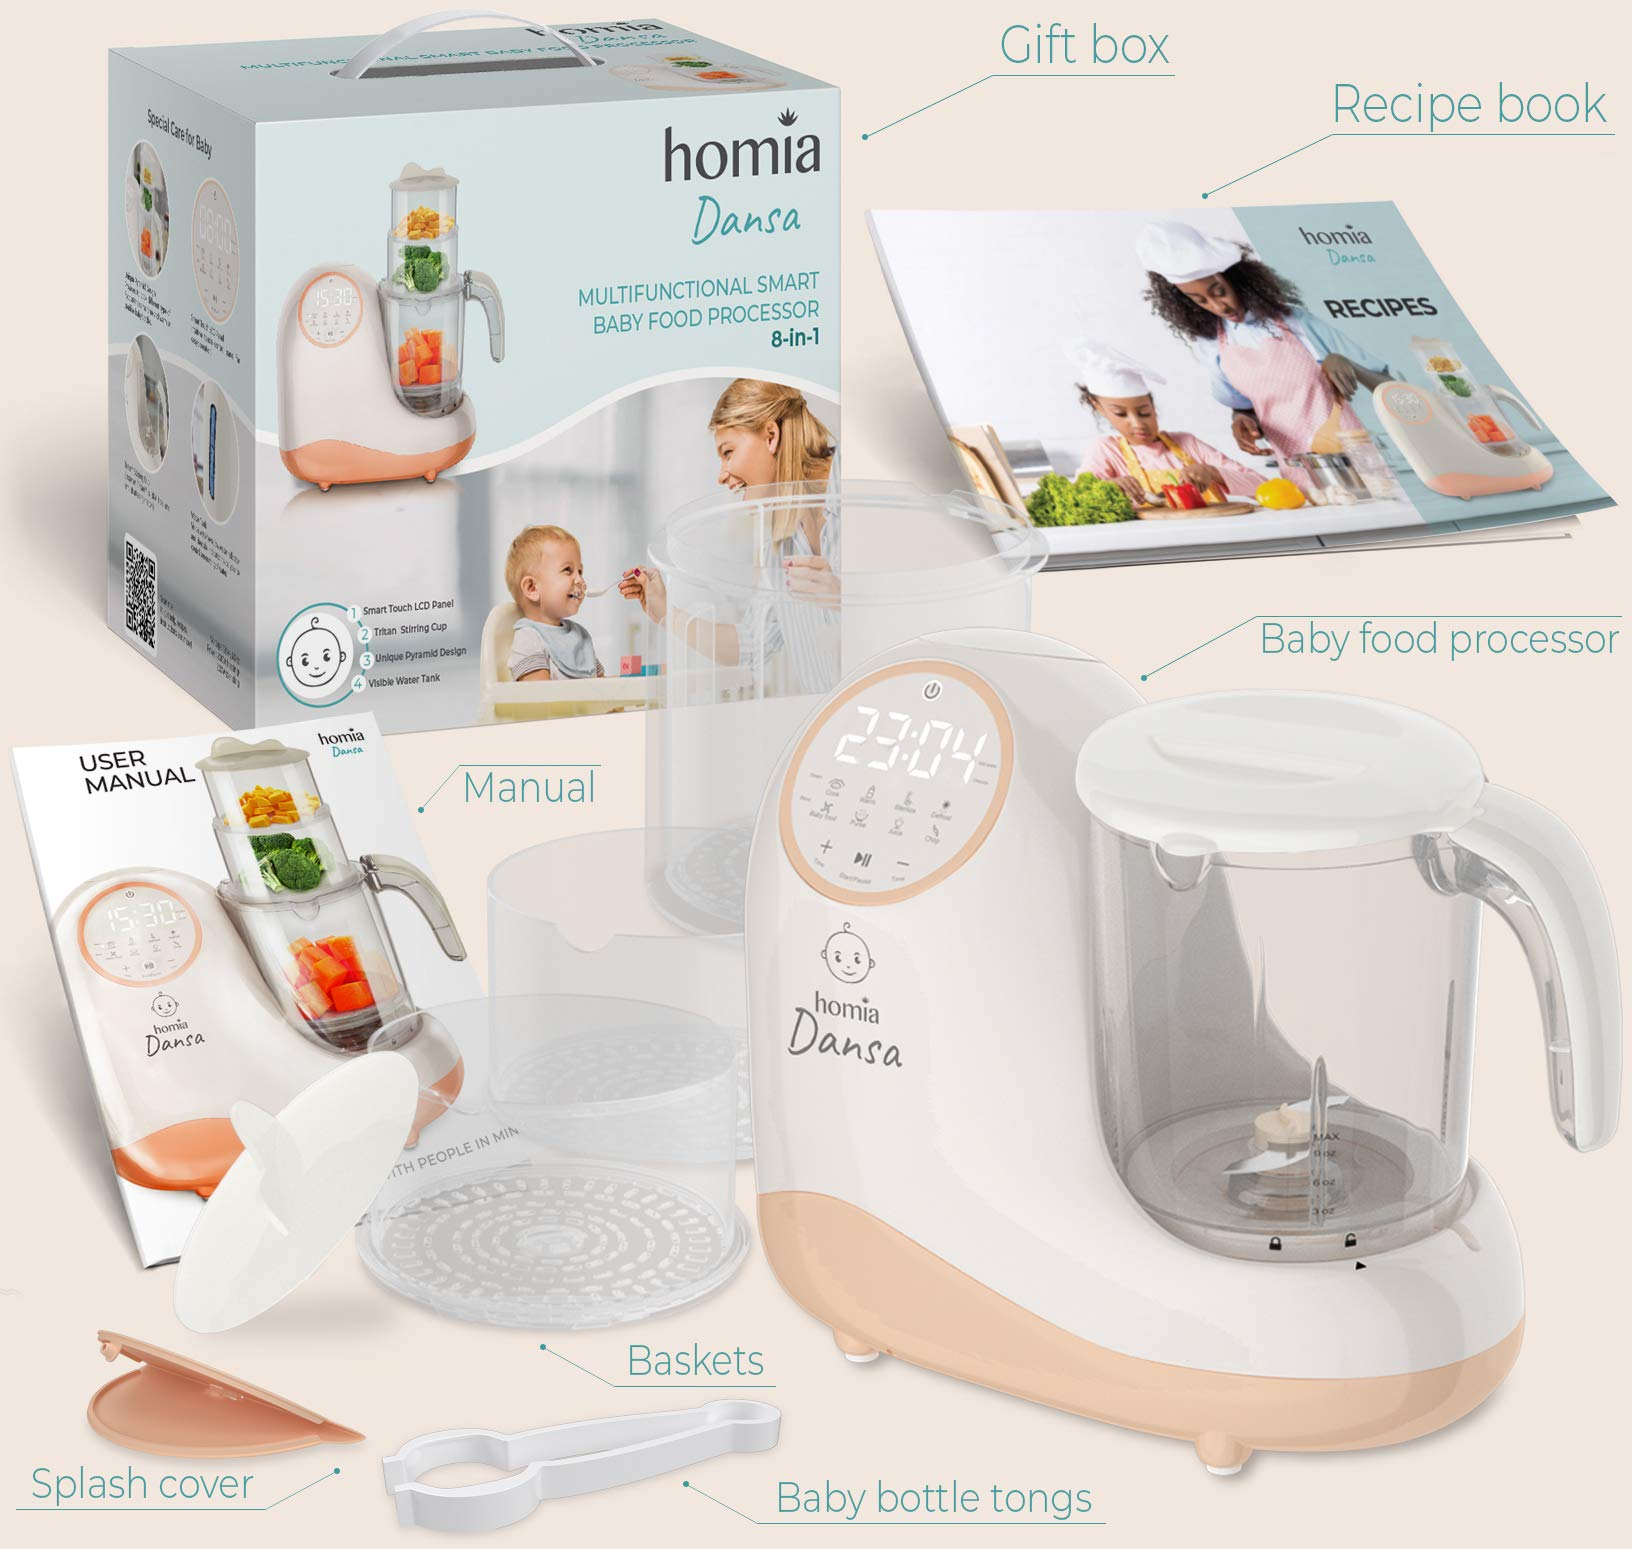 Baby Food Maker Chopper Grinder - Mills and Steamer 8 in 1 Processor for Toddlers - Steam, Blend, Chop, Disinfect, Clean, 20 Oz Tritan Stirring Cup, Touch Control Panel, Auto Shut-Off, 110V Only by homia (Image #8)